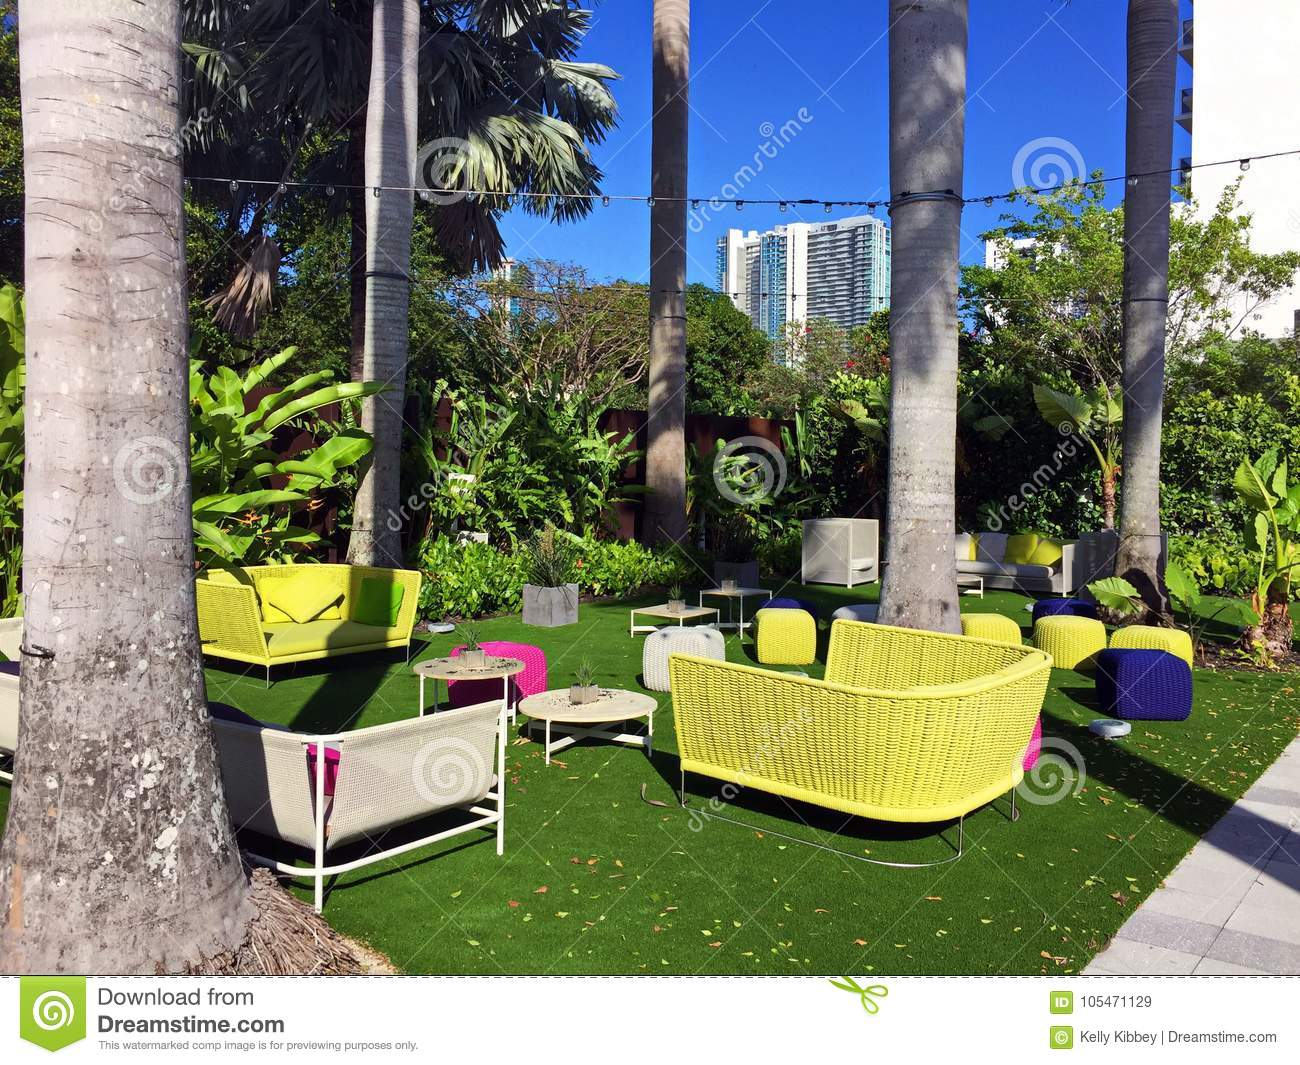 https www dreamstime com colorful patio furniture tropical setting brightly colored lounge outside back plant food wine miami florida image105471129